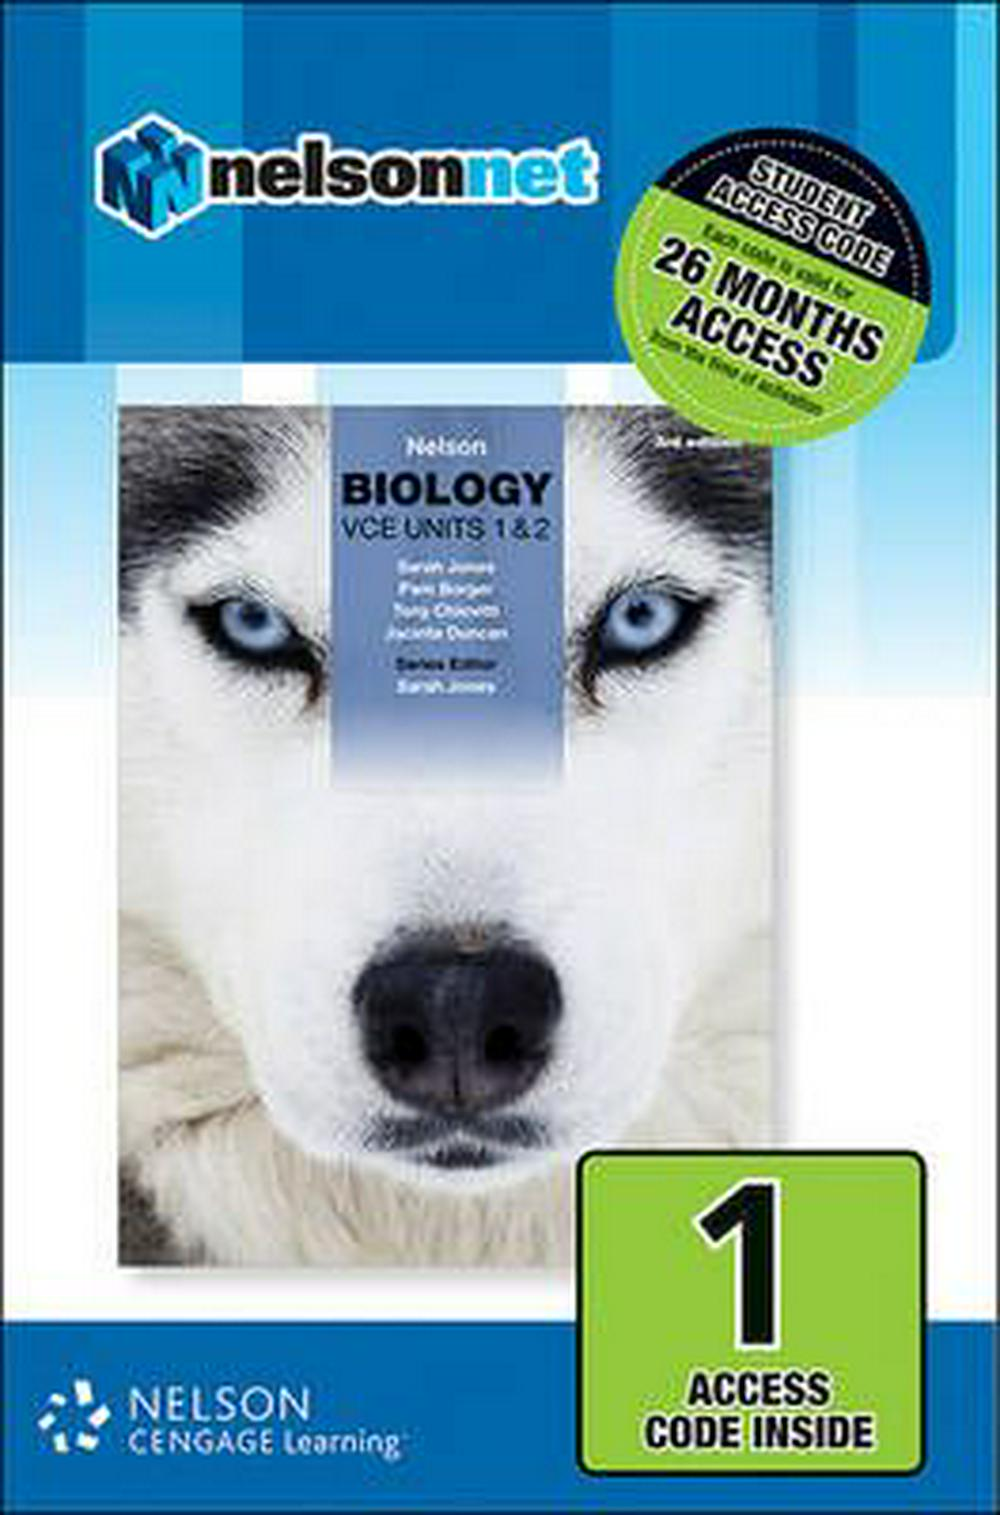 Nelson Biology Vce Units 1 & 2 1-Code Access Card